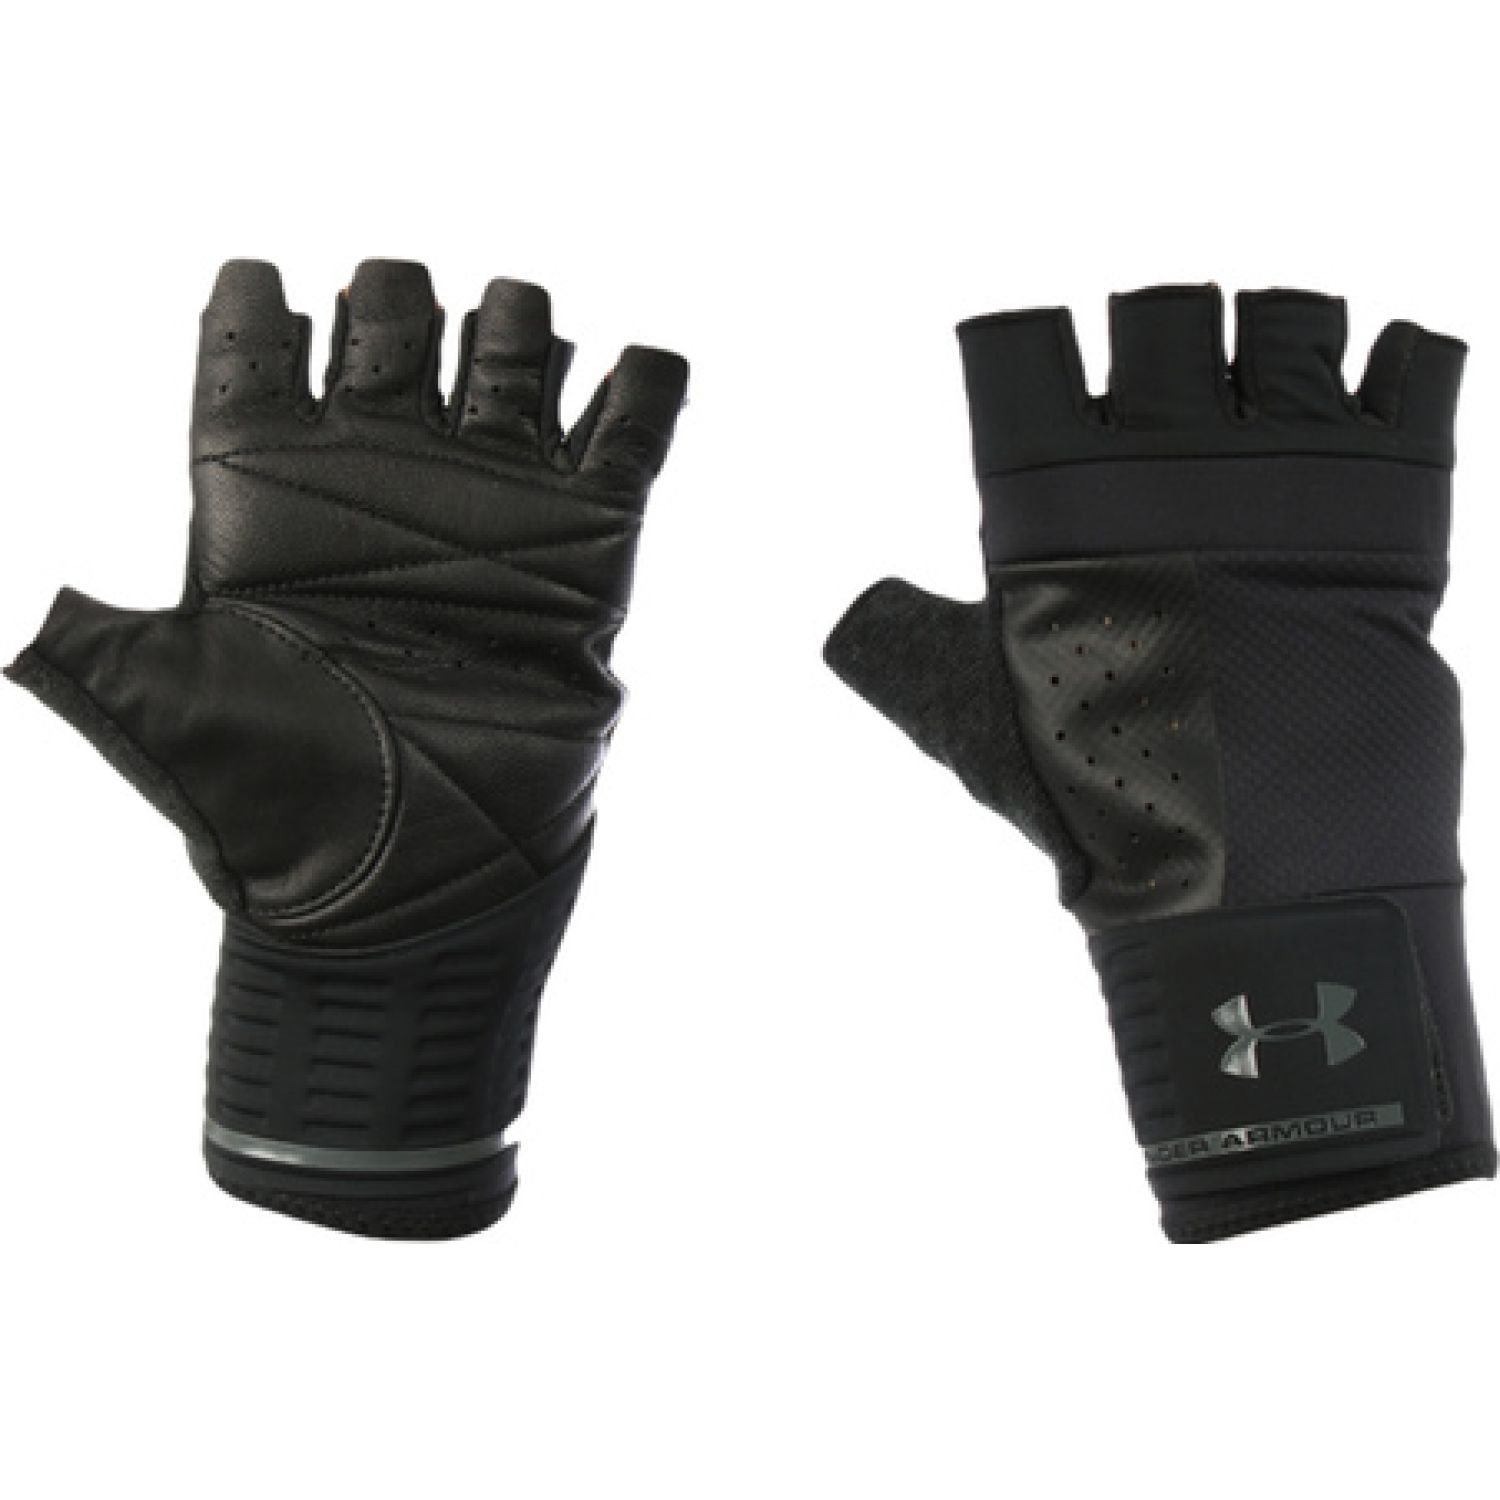 Under Armour Men'S Weightlifting Glove-Blk Negro Guantes